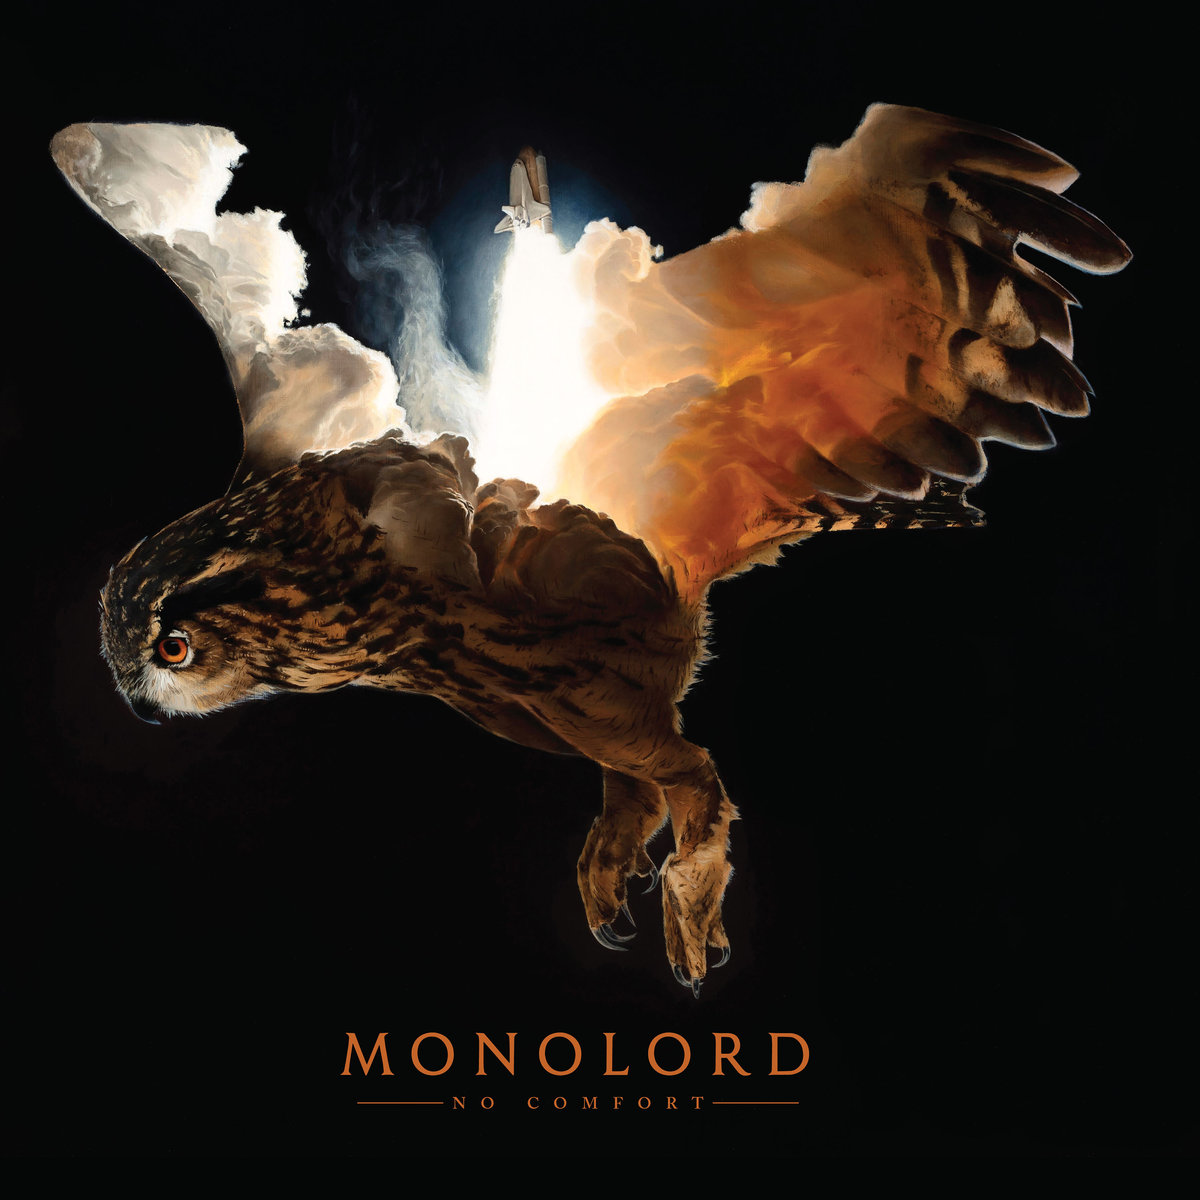 Monolord album cover